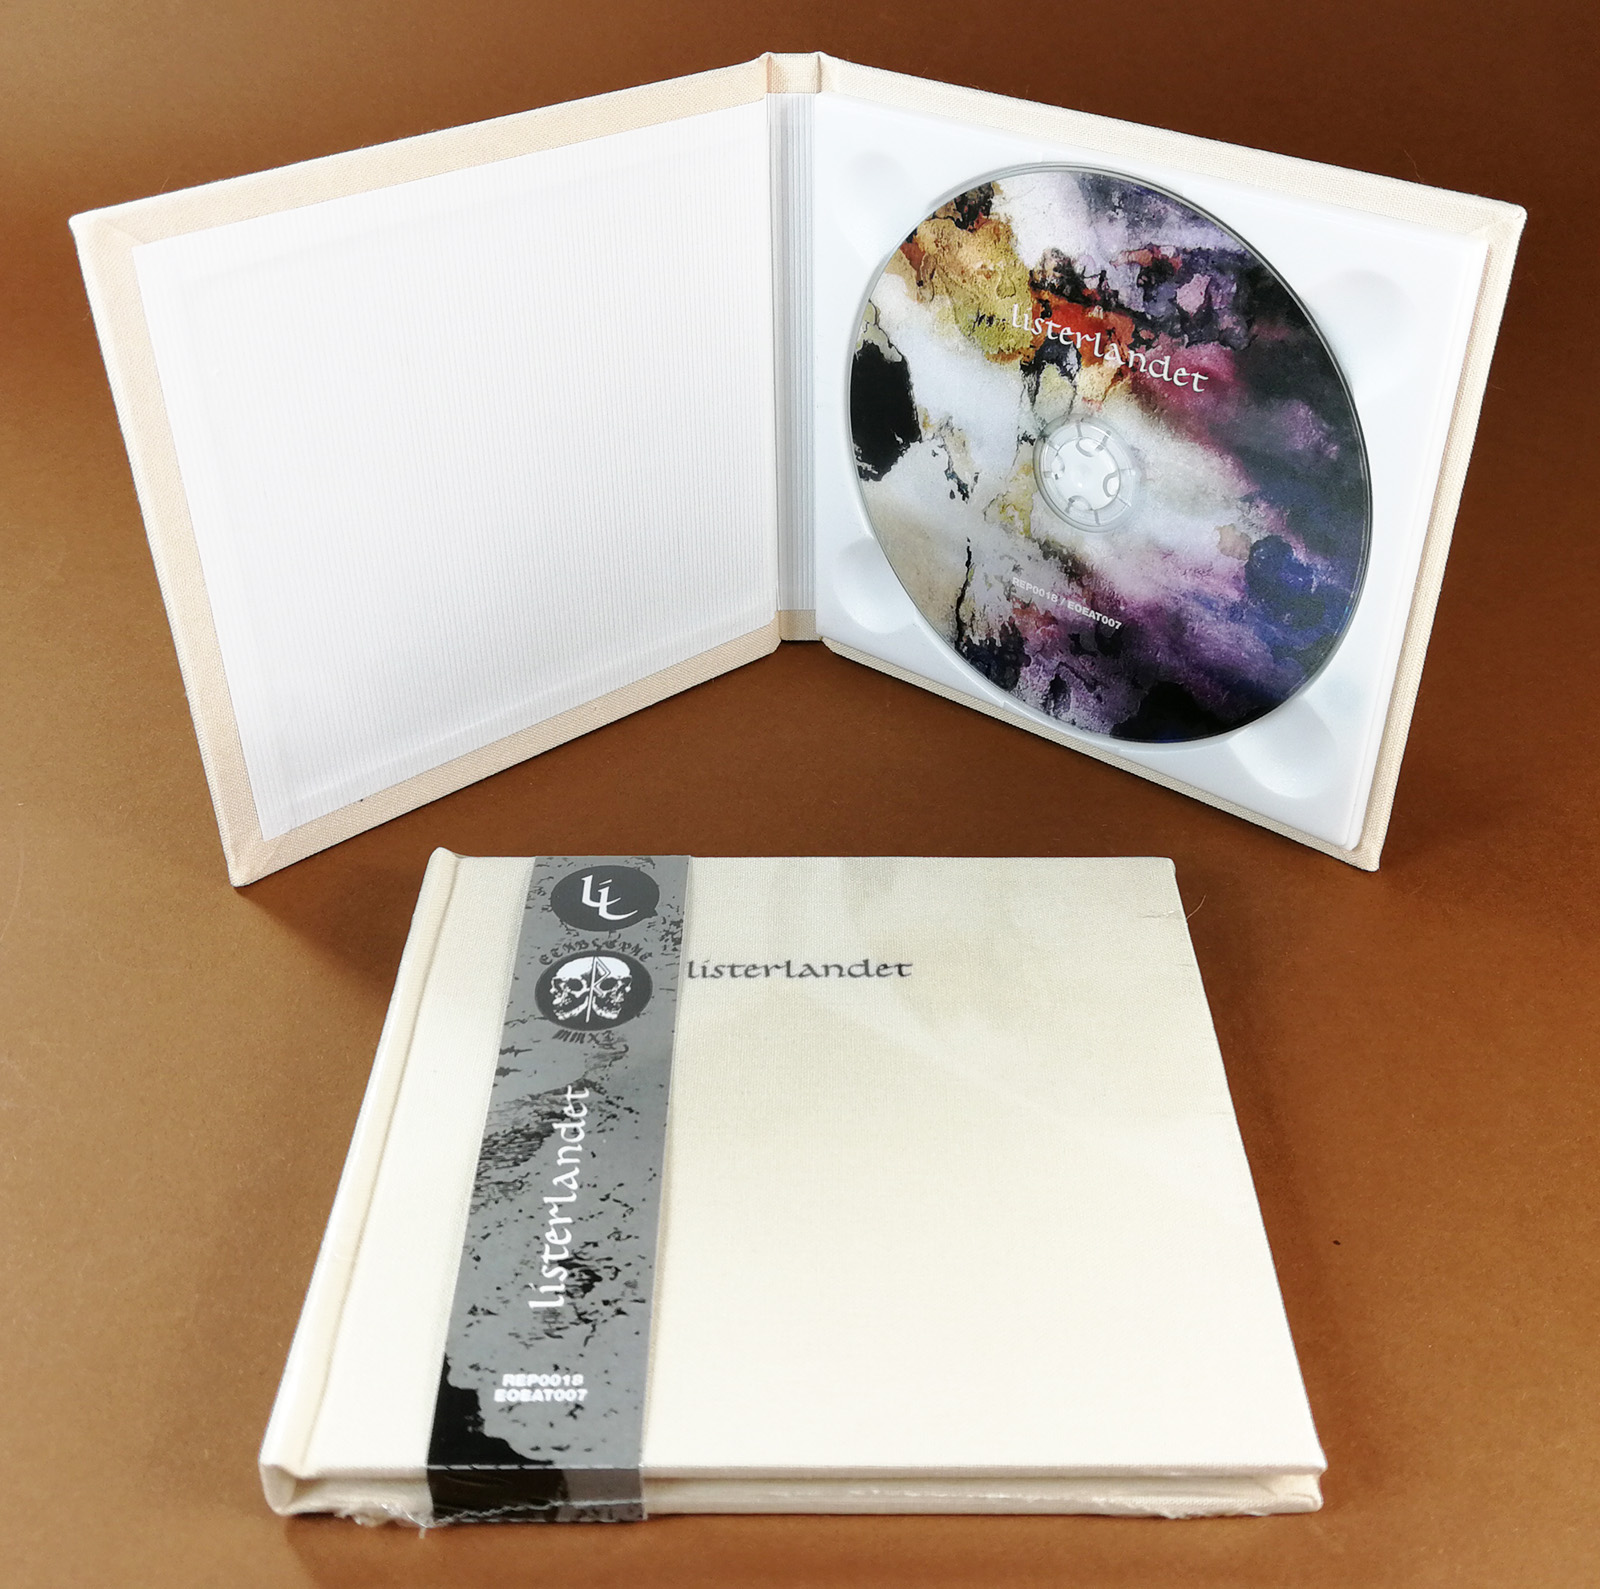 UV-LED printed CDs in hardback cream linen fabric digipacks with an obi strip